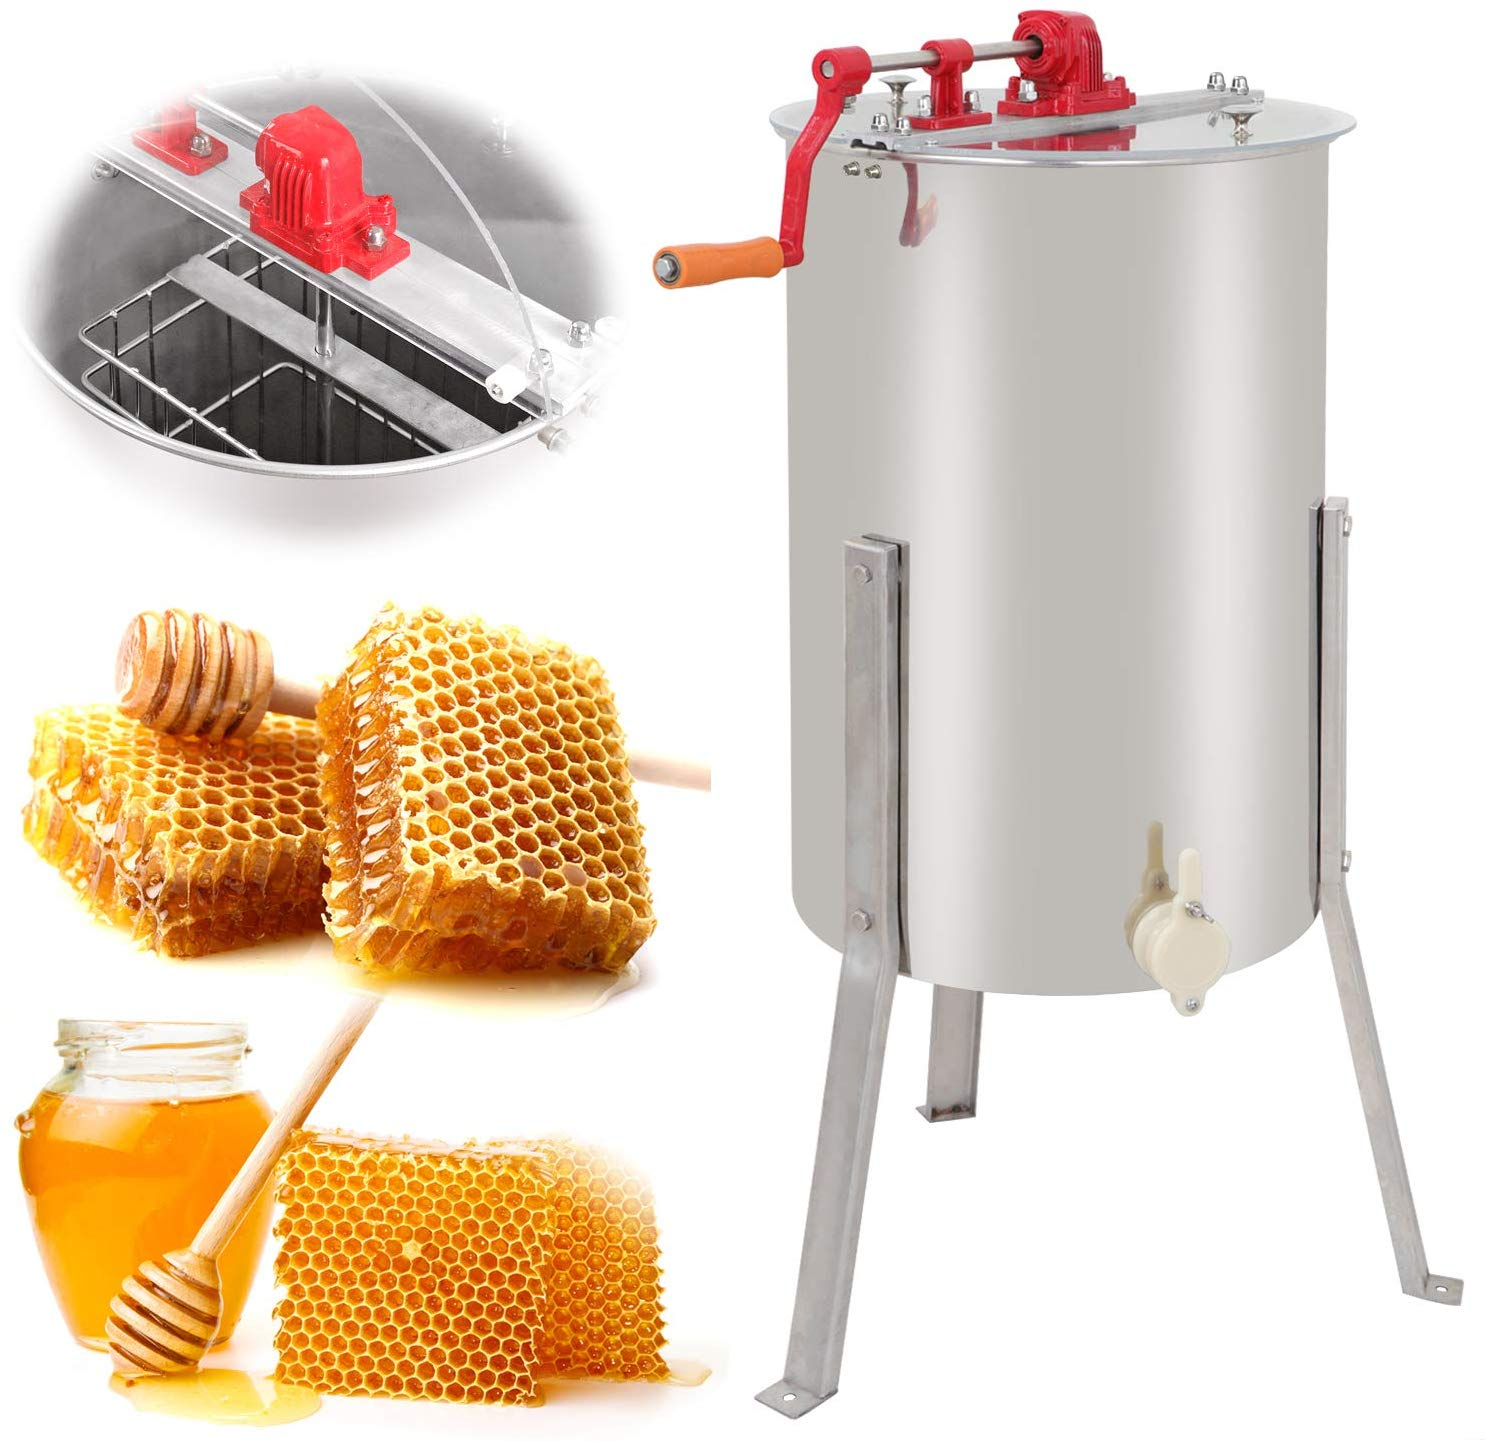 SUPER DEAL Pro 2 Frame Stainless Steel Honey Extractor